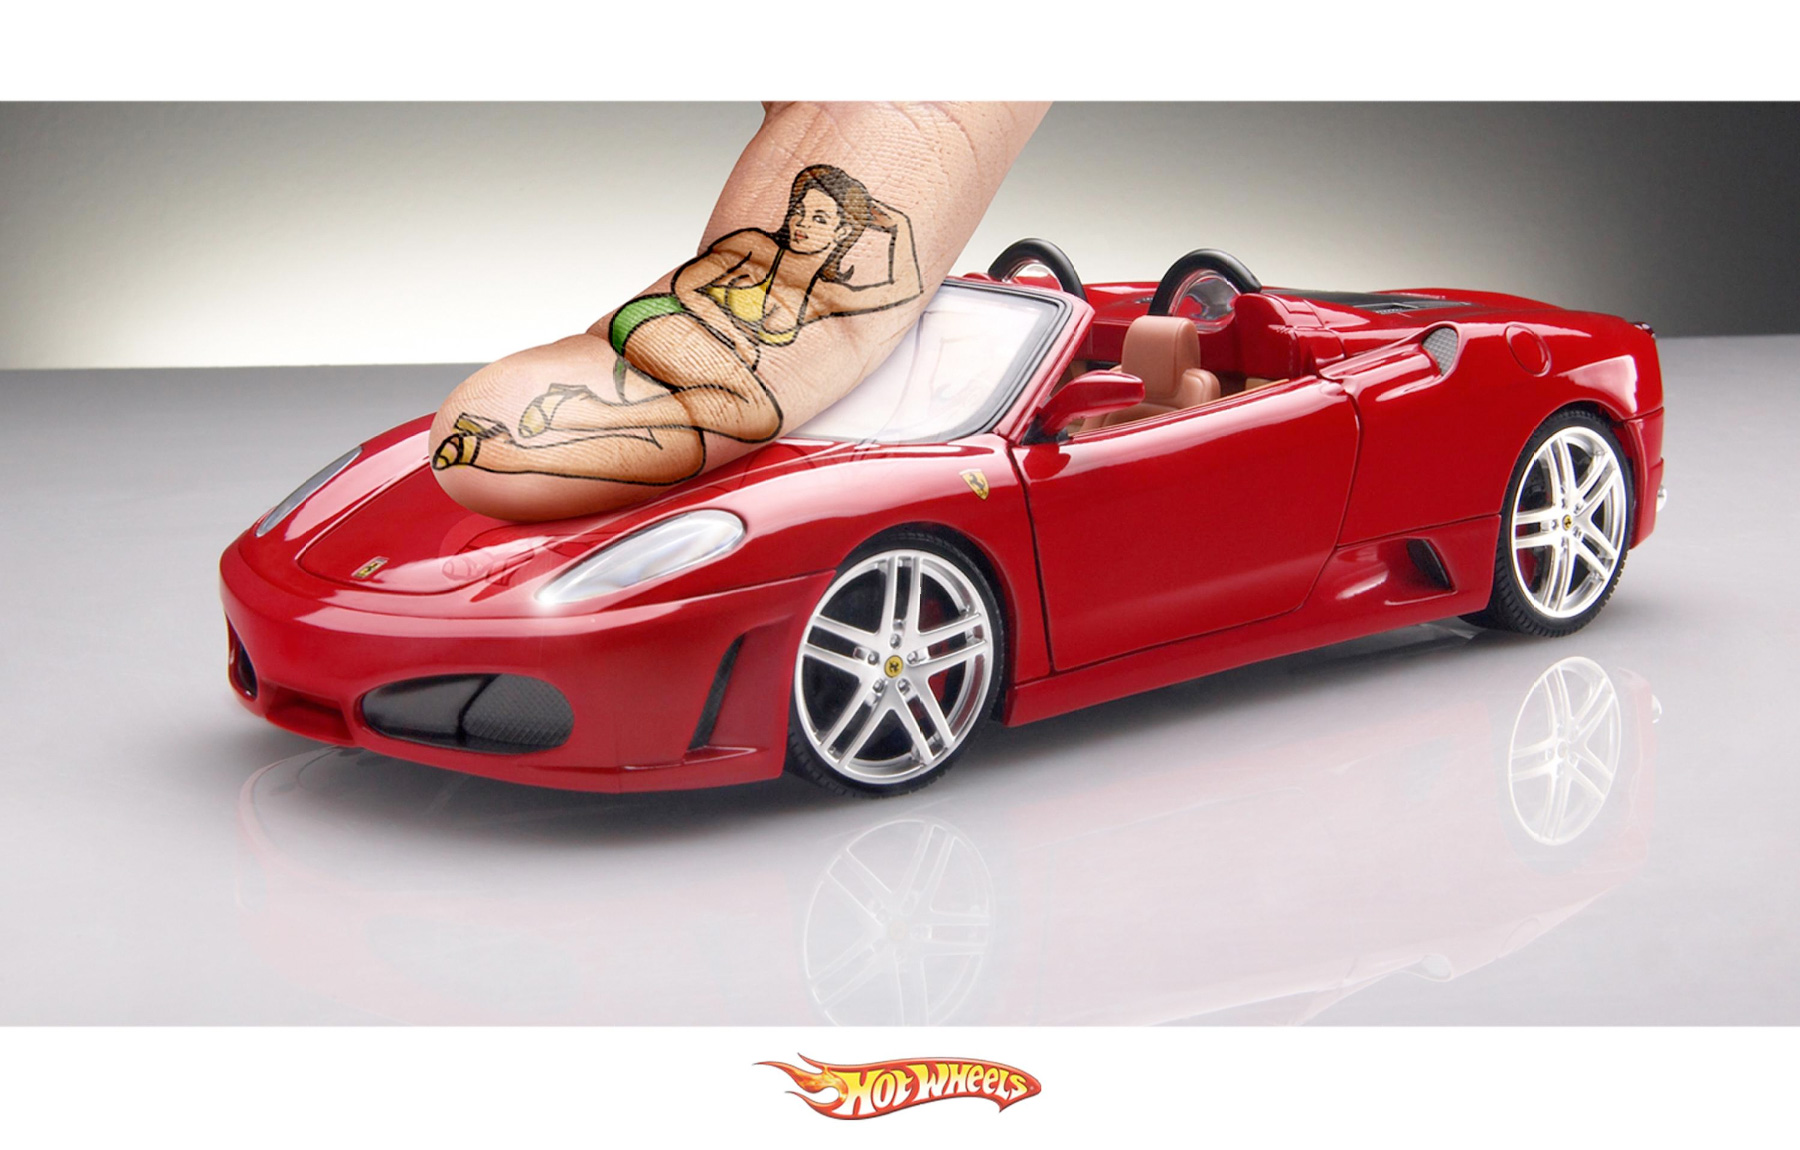 Hot Wheels Clip Art